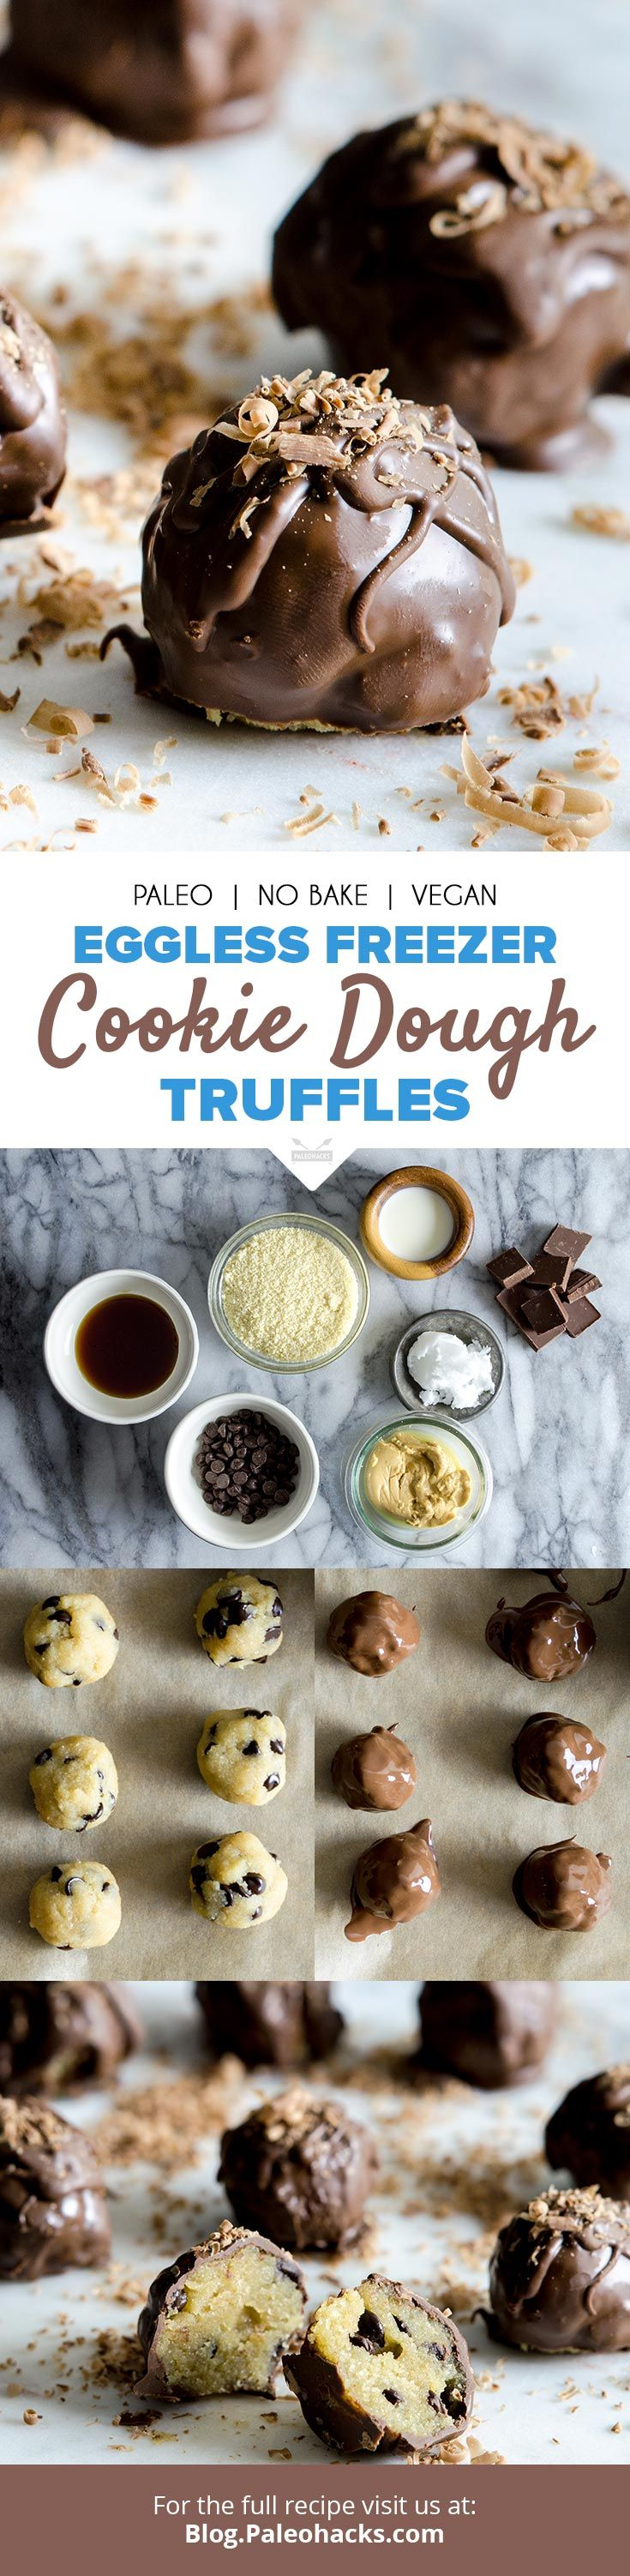 Roll up almond flour cookies and dip 'em in decadent dark chocolate for easy, no-bake truffles! Get the full recipe here: http://paleo.co/cookiedoughtruffles